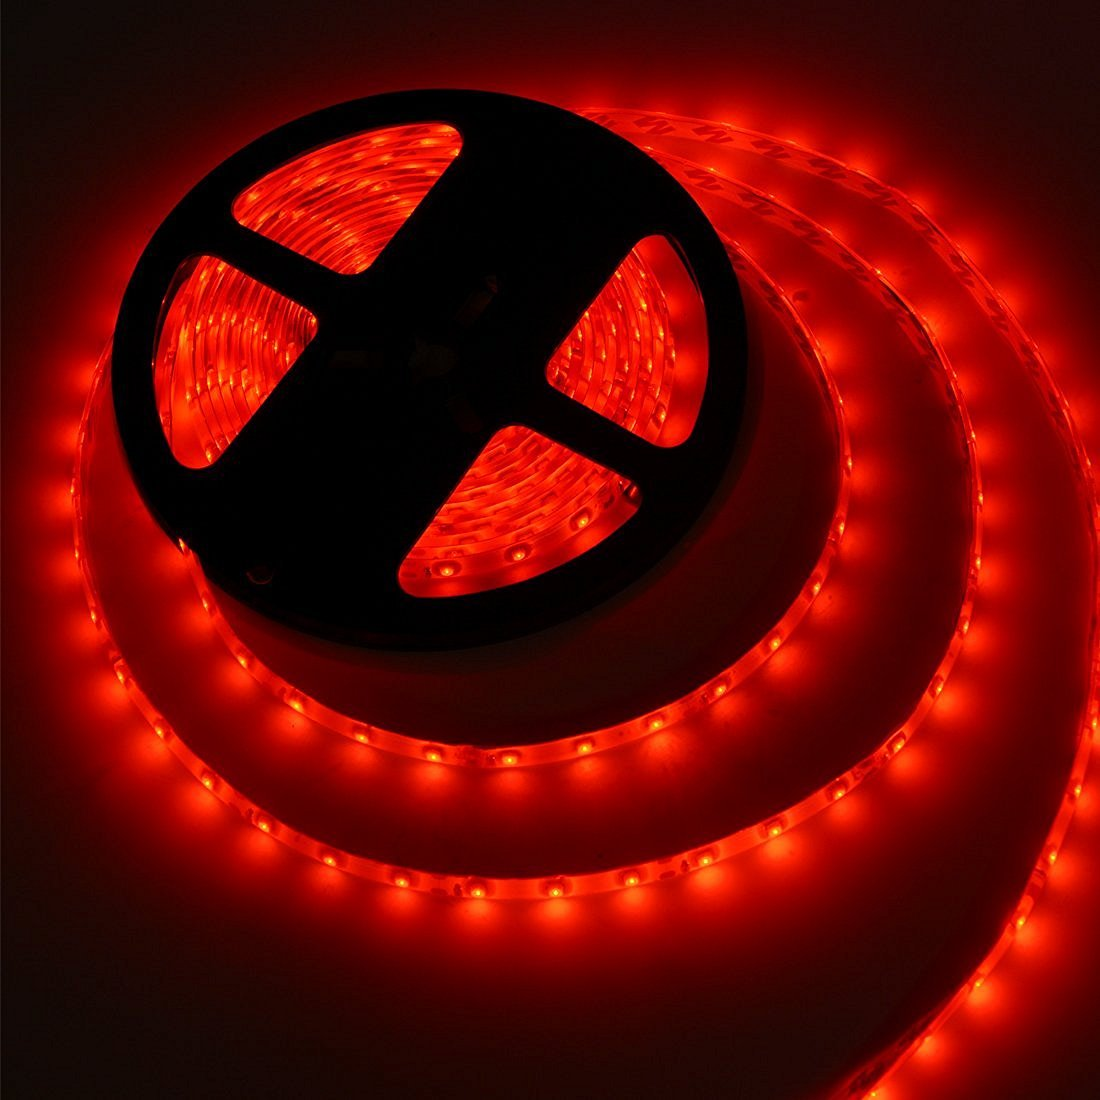 Amazon meili led light strip smd 3528 164 ft 5 meter amazon meili led light strip smd 3528 164 ft 5 meter waterproof 300 leds 12v flexible rope light no power supply red home improvement aloadofball Image collections